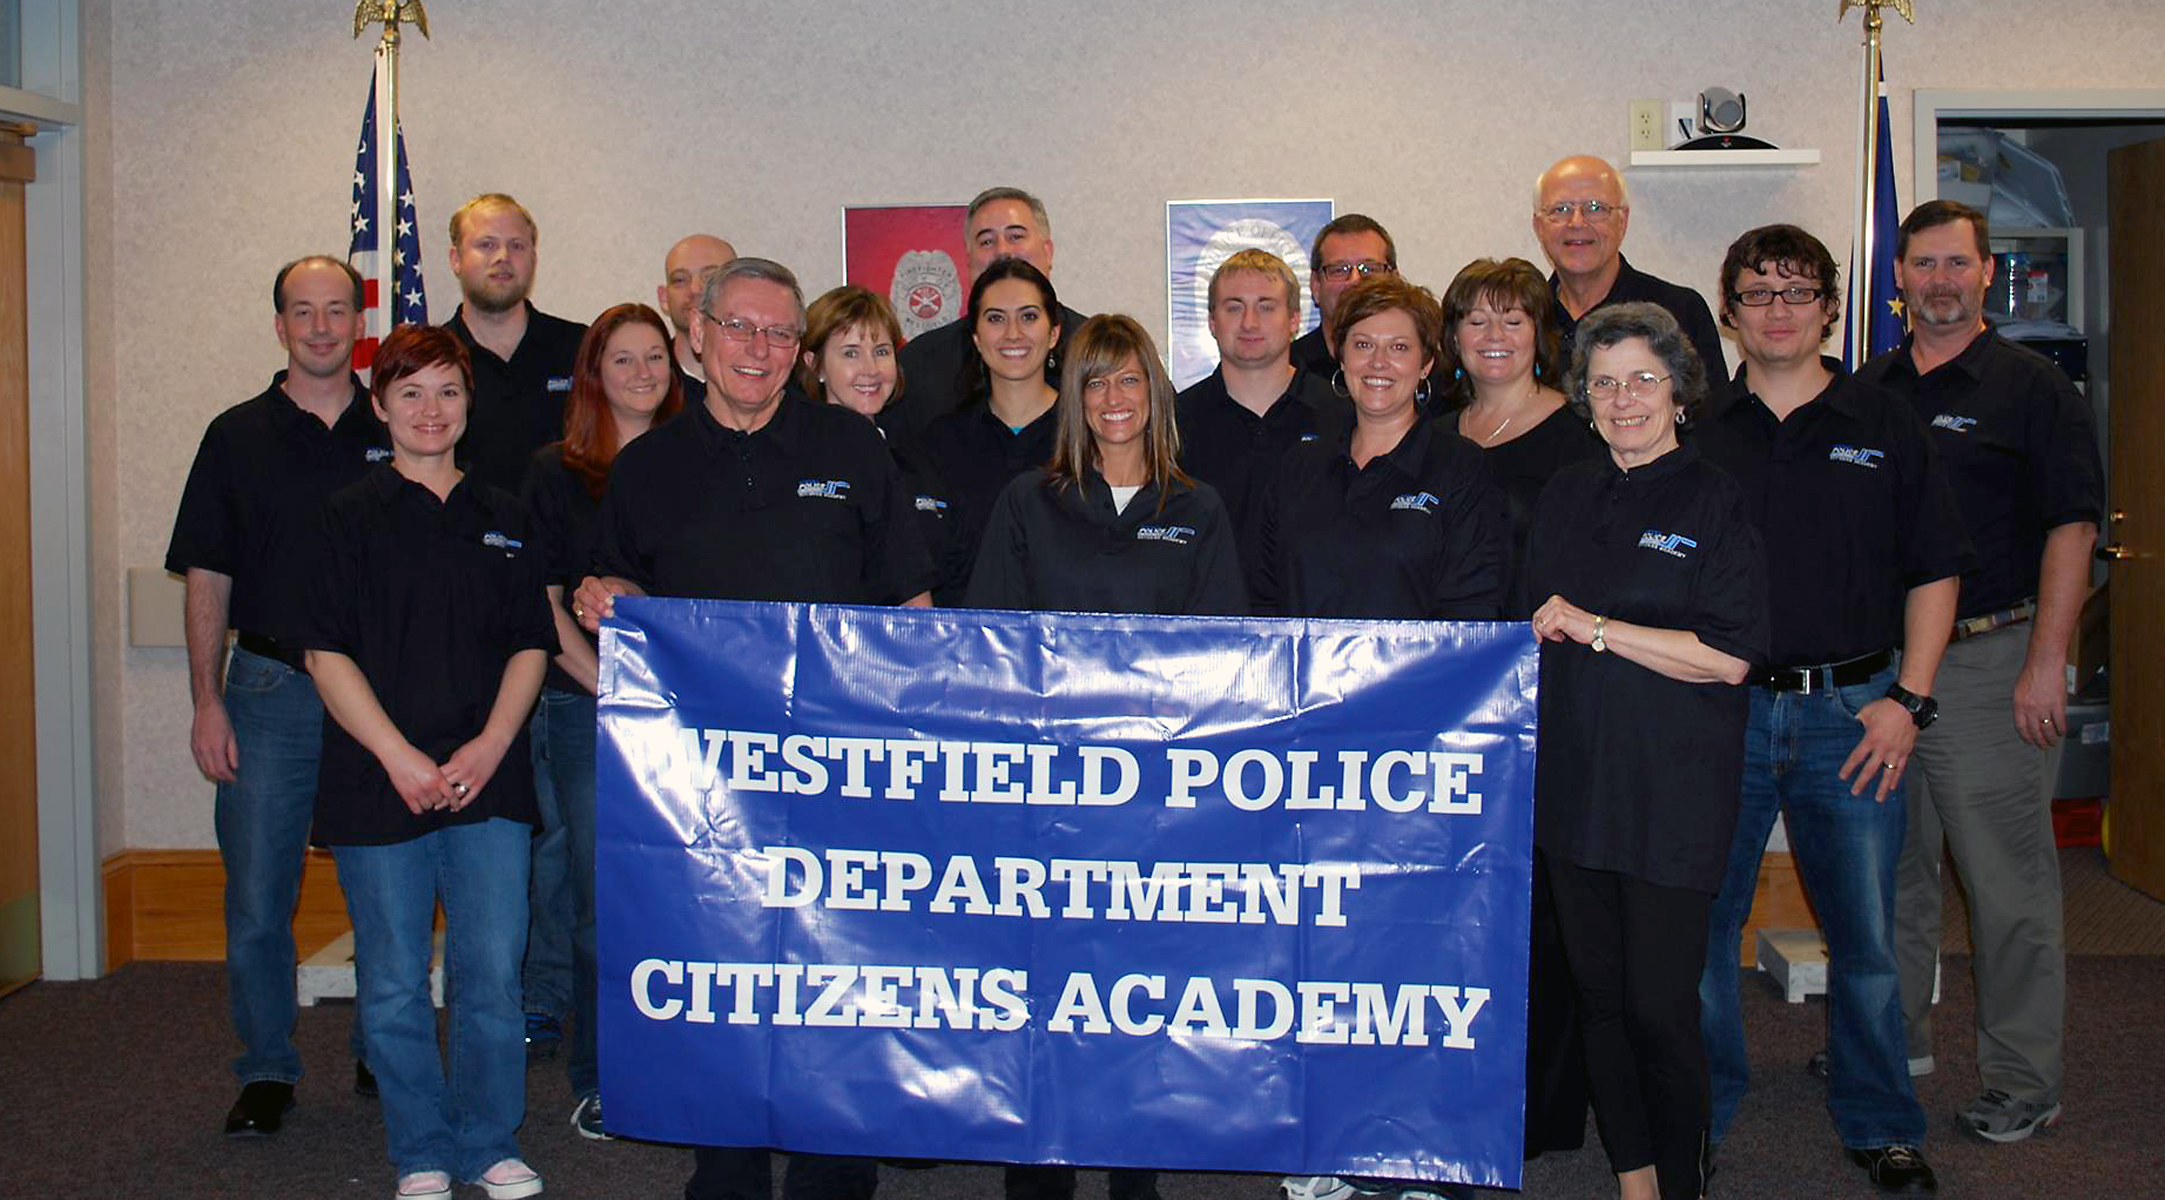 Members of the fall 2013 Citizens' Academy celebrate their graduation at the end of November. Applications are now being accepted for the spring 2014 academy. (Submitted photo)